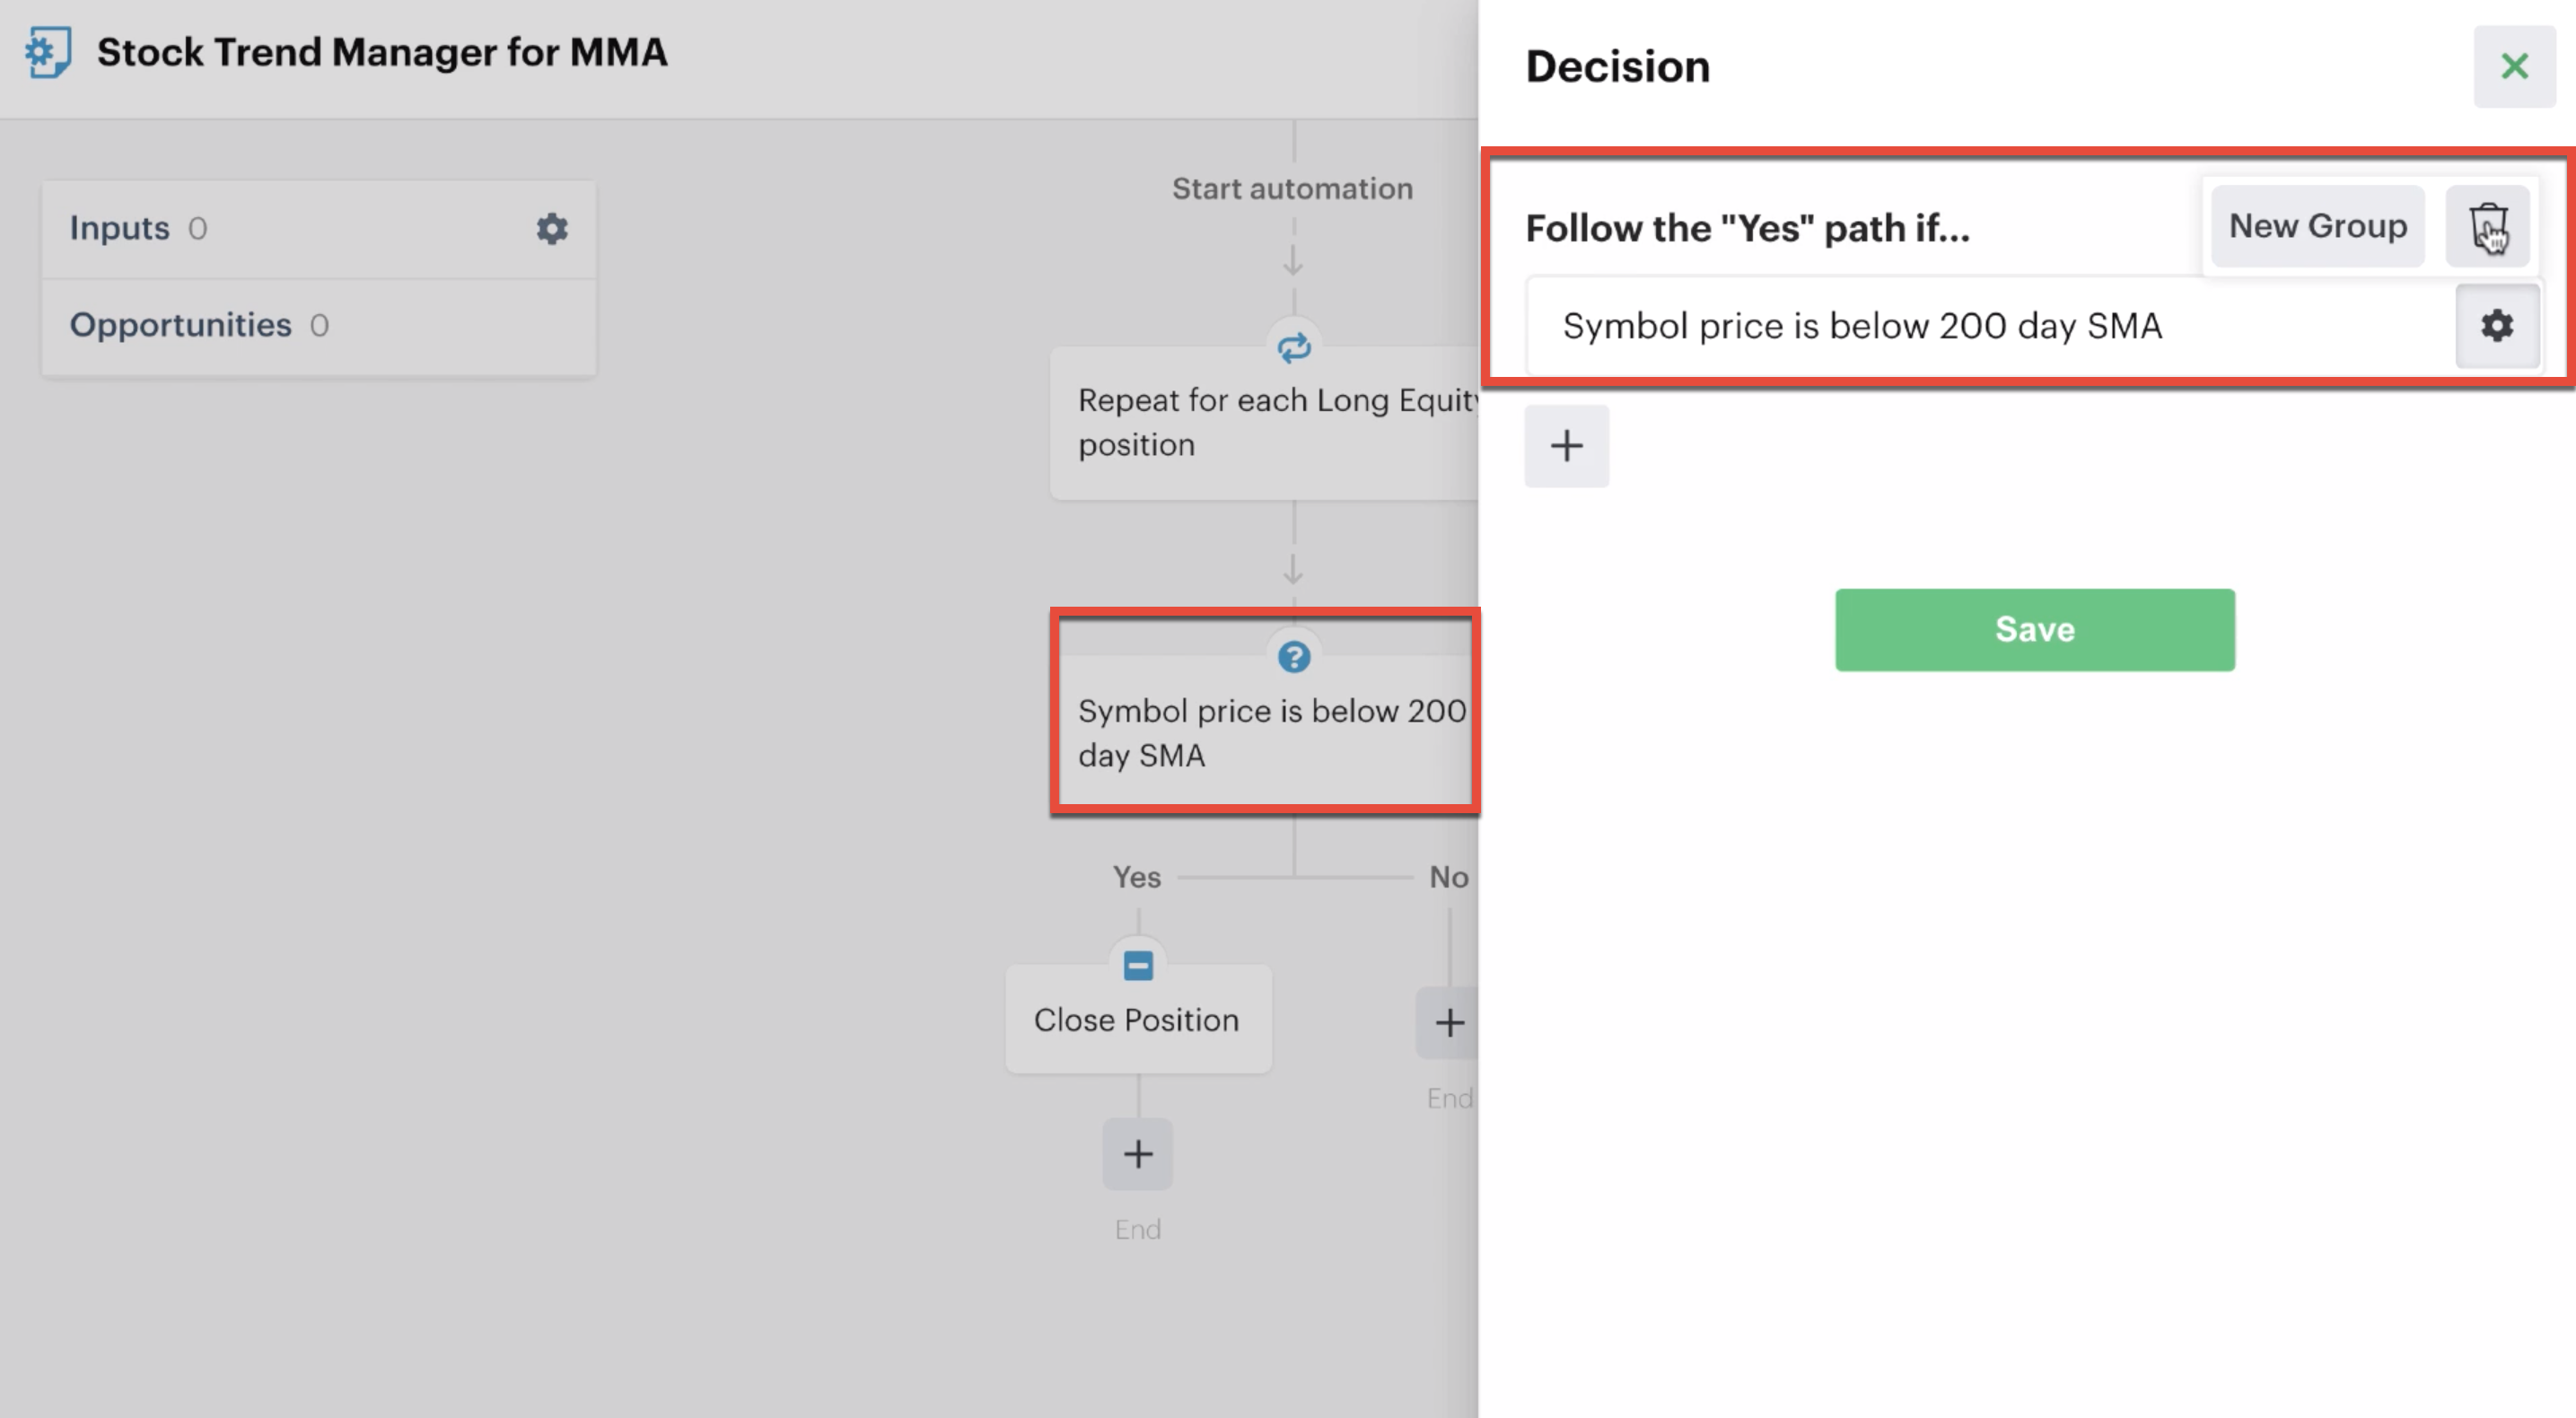 Deleting a decision action